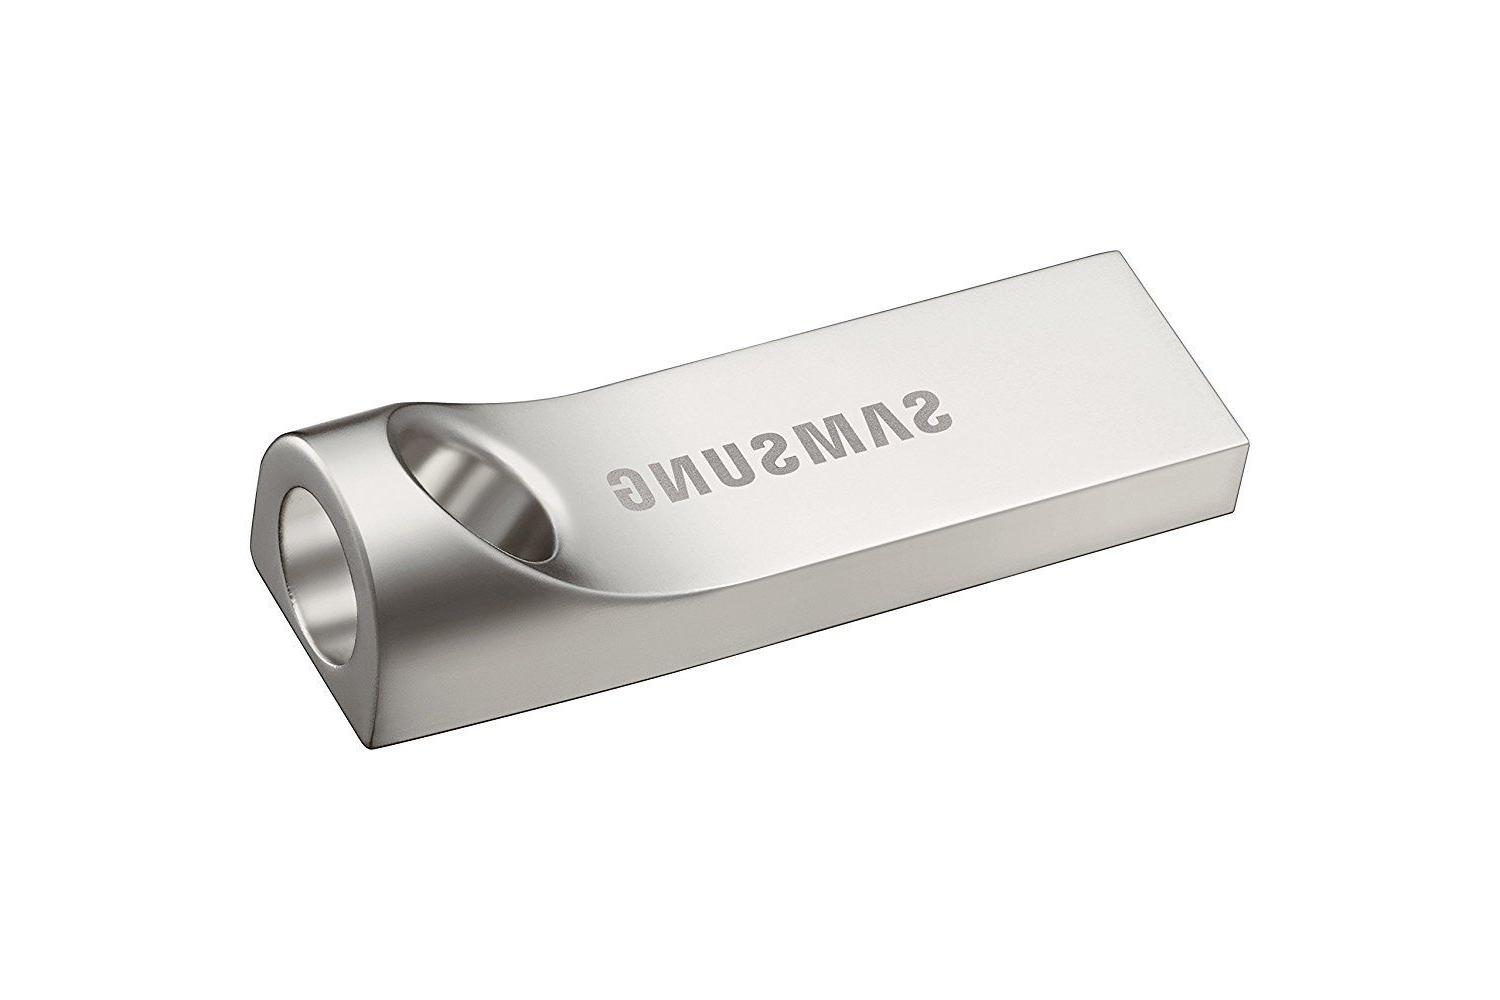 Samsung Bar USB 3.0 150MB/s Metal Flash Thumb MUF-32BA